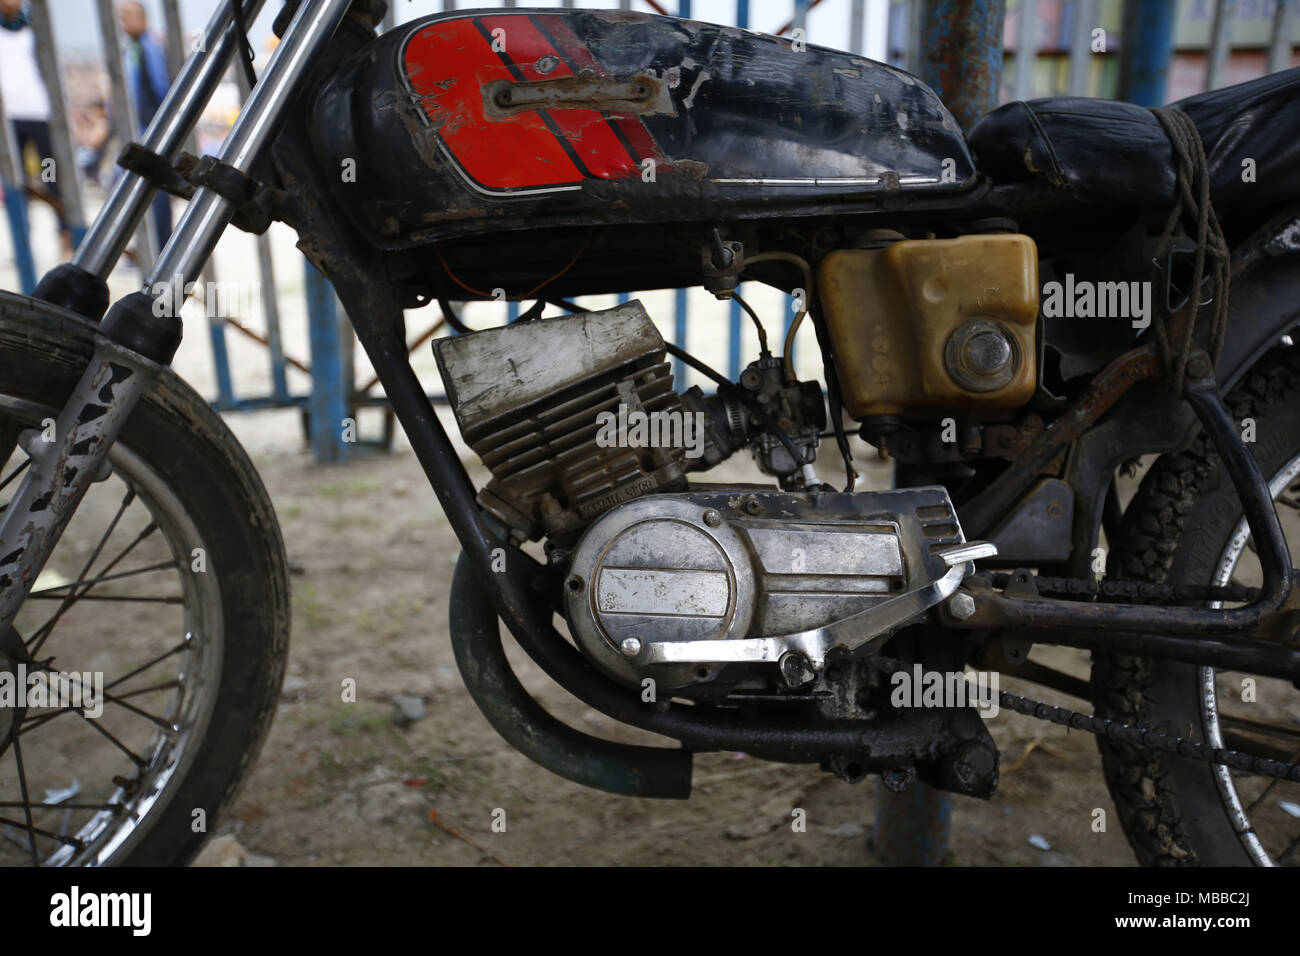 Bhaktapur, Nepal. 10th Apr, 2018. A motorbike of a stuntman is pictured during the 'Well of Death' spectacle at a fair in Bhaktapur, Nepal on Tuesday, April 10, 2018. Credit: Skanda Gautam/ZUMA Wire/Alamy Live News - Stock Image